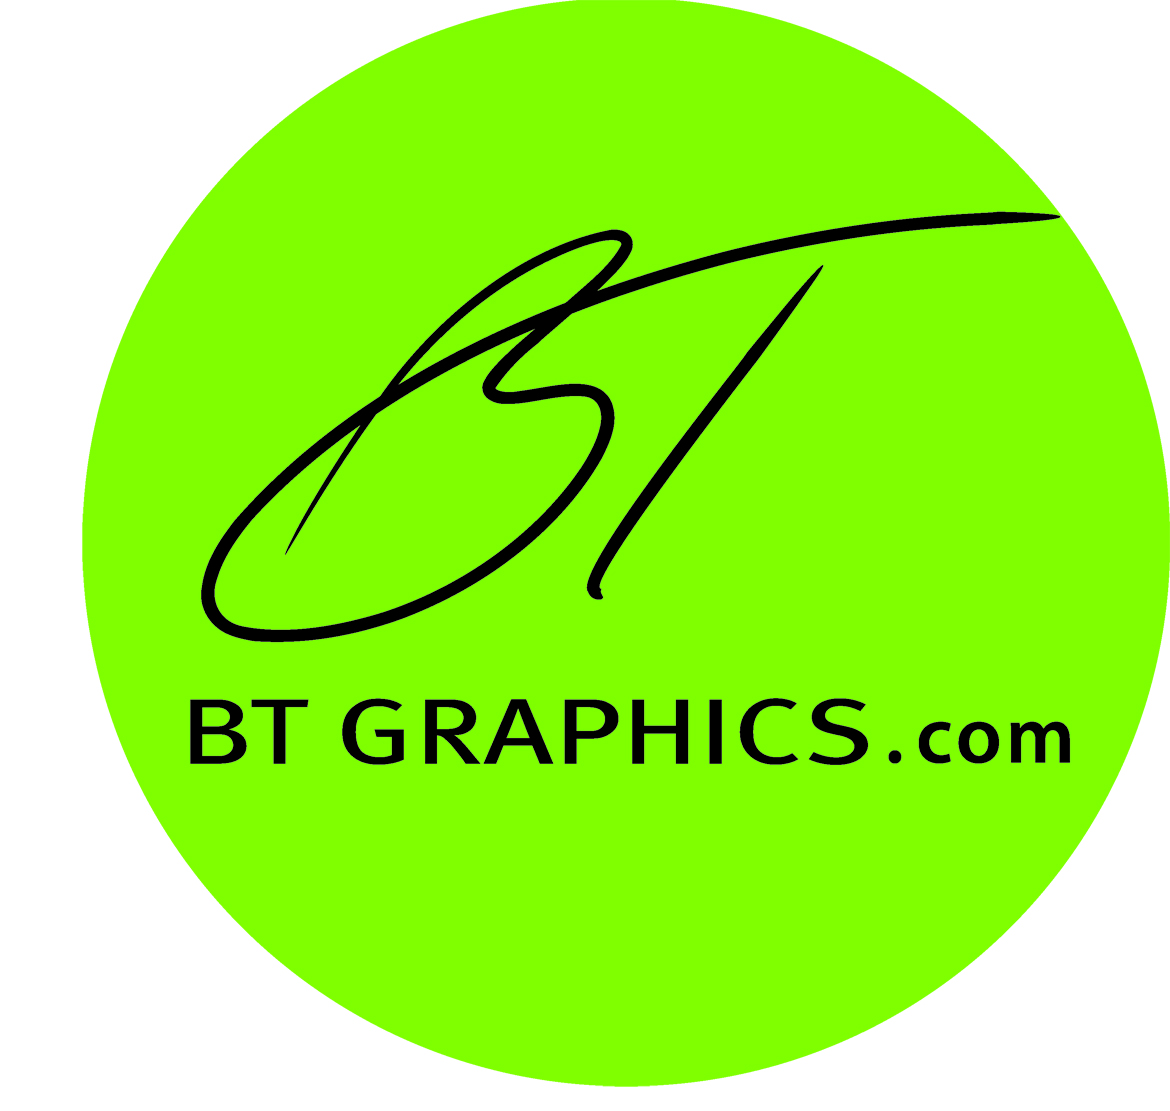 BT Graphics Logo and Website